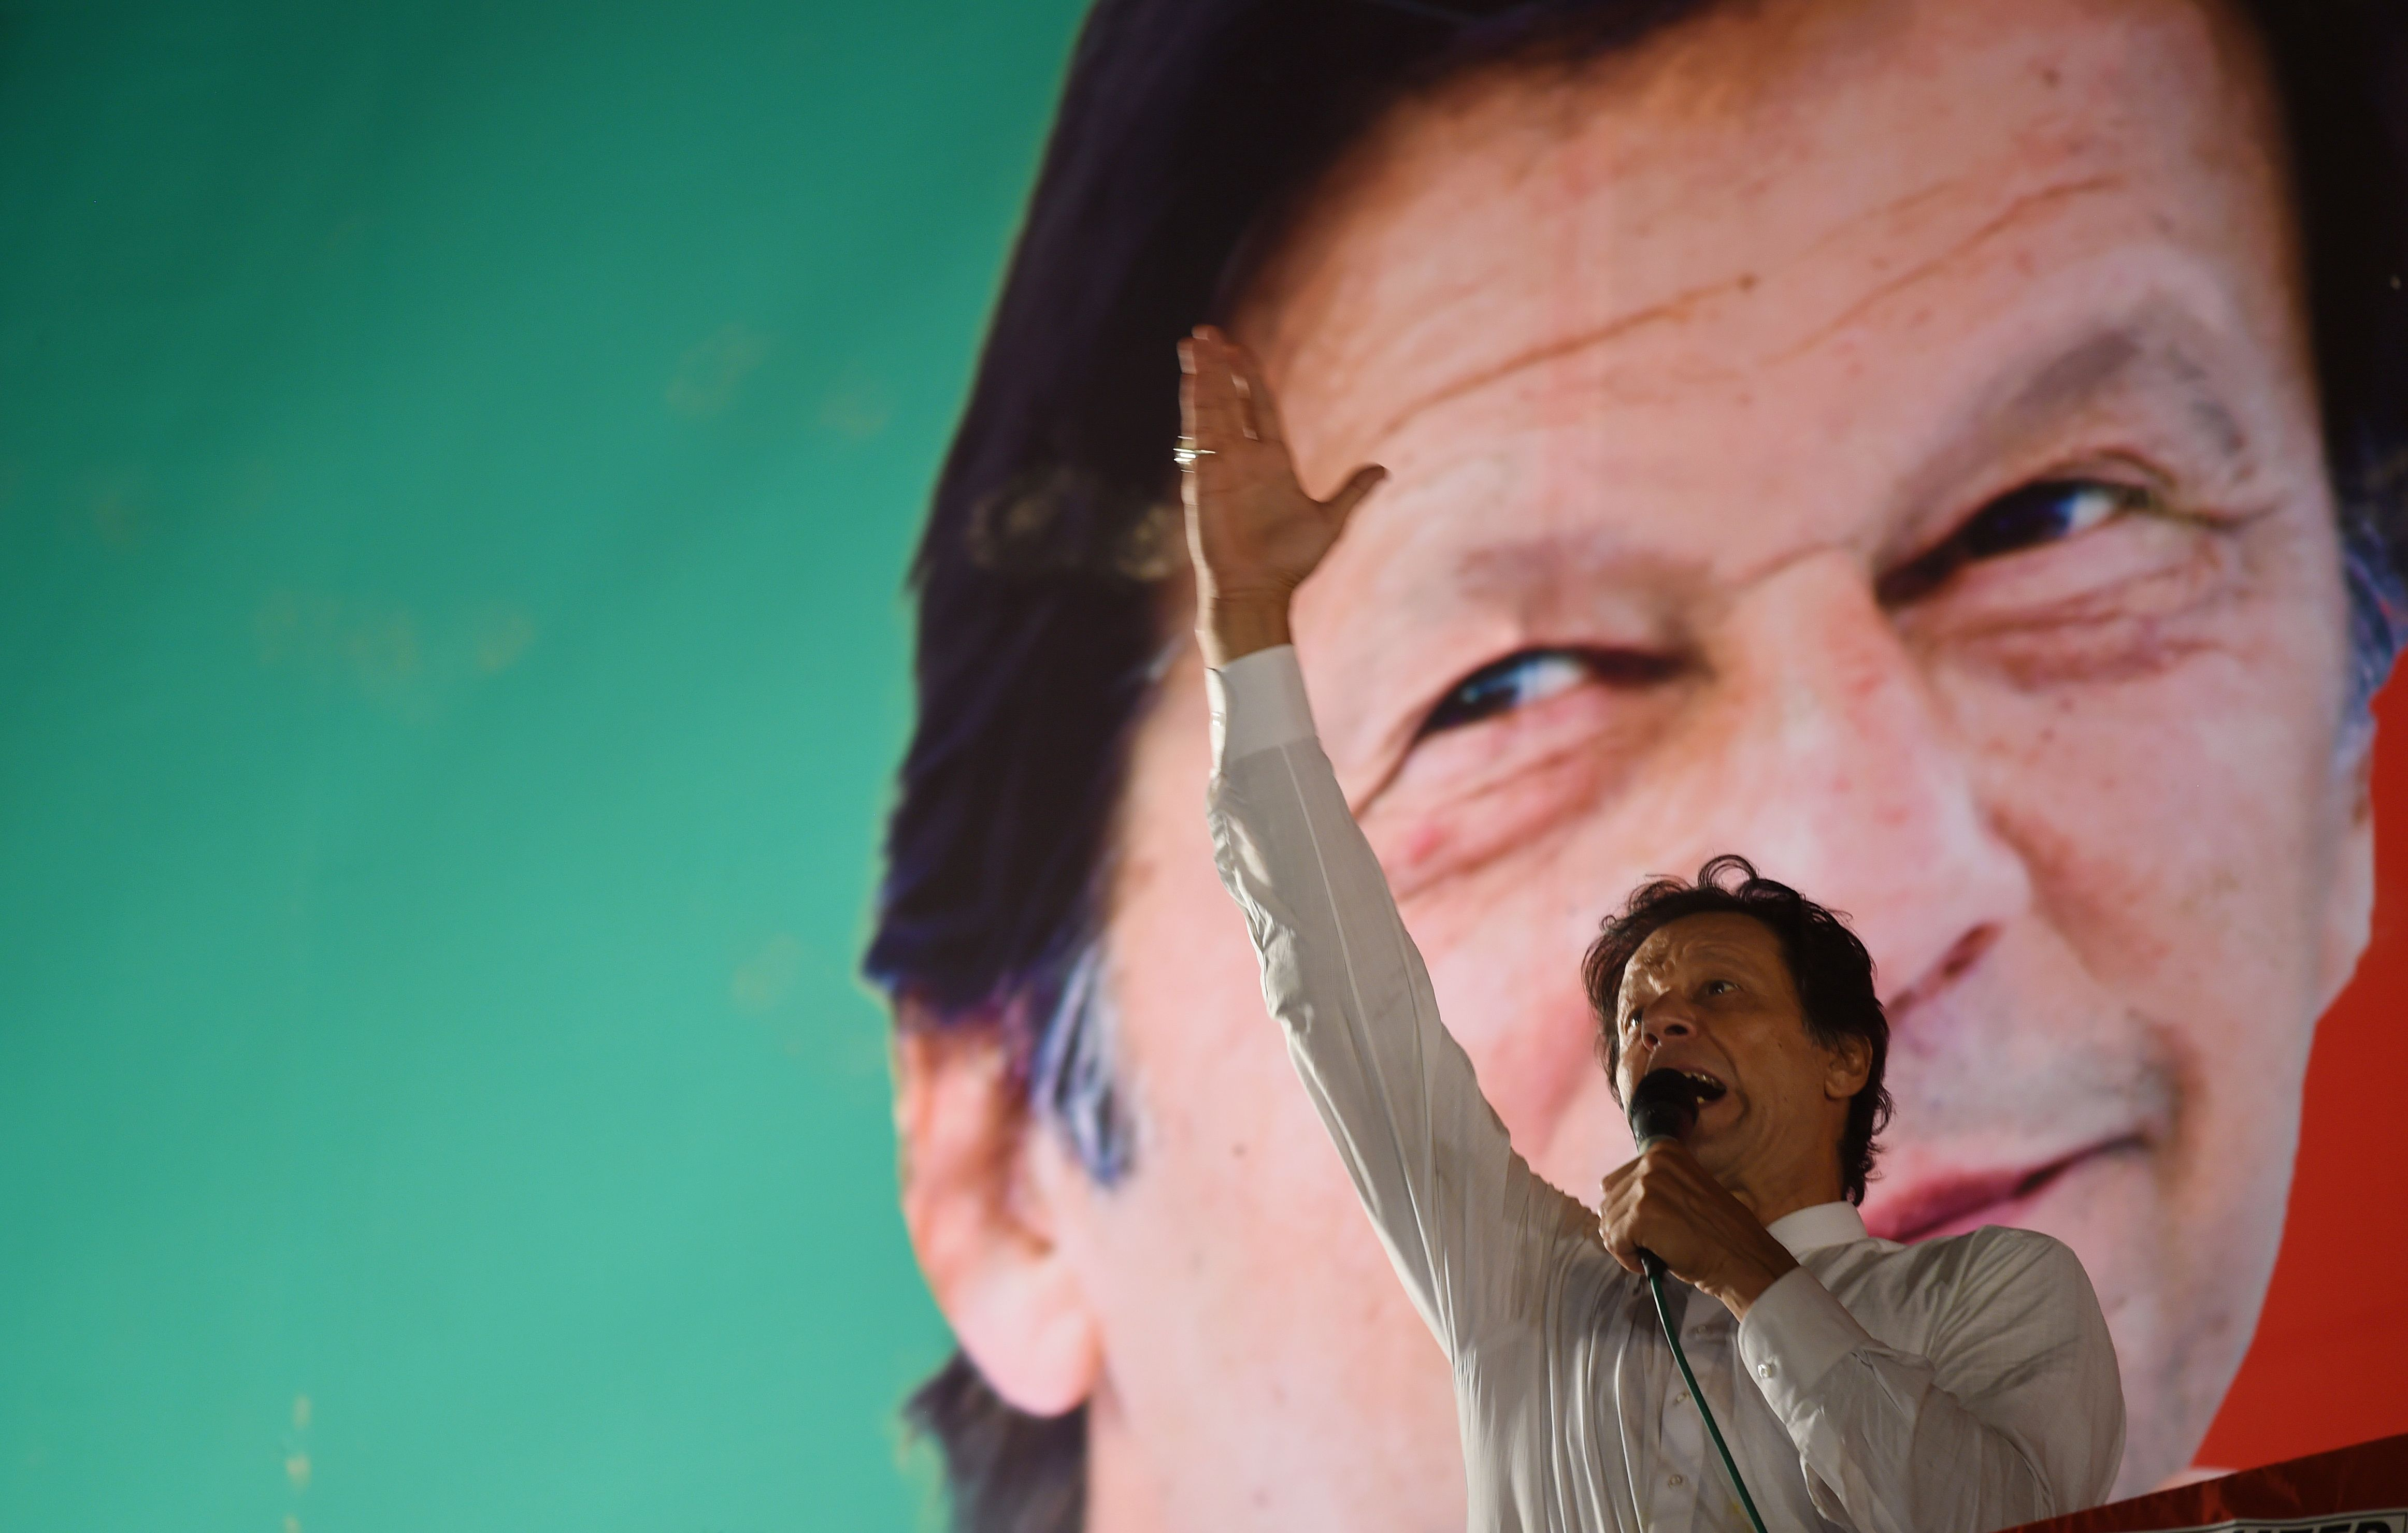 Pakistani cricket star-turned-politician and head of the Pakistan Tehreek-e-Insaf (PTI) Imran Khan gestures as he delivers a speech during a political campaign rally, in Islamabad, on July 21, 2018.